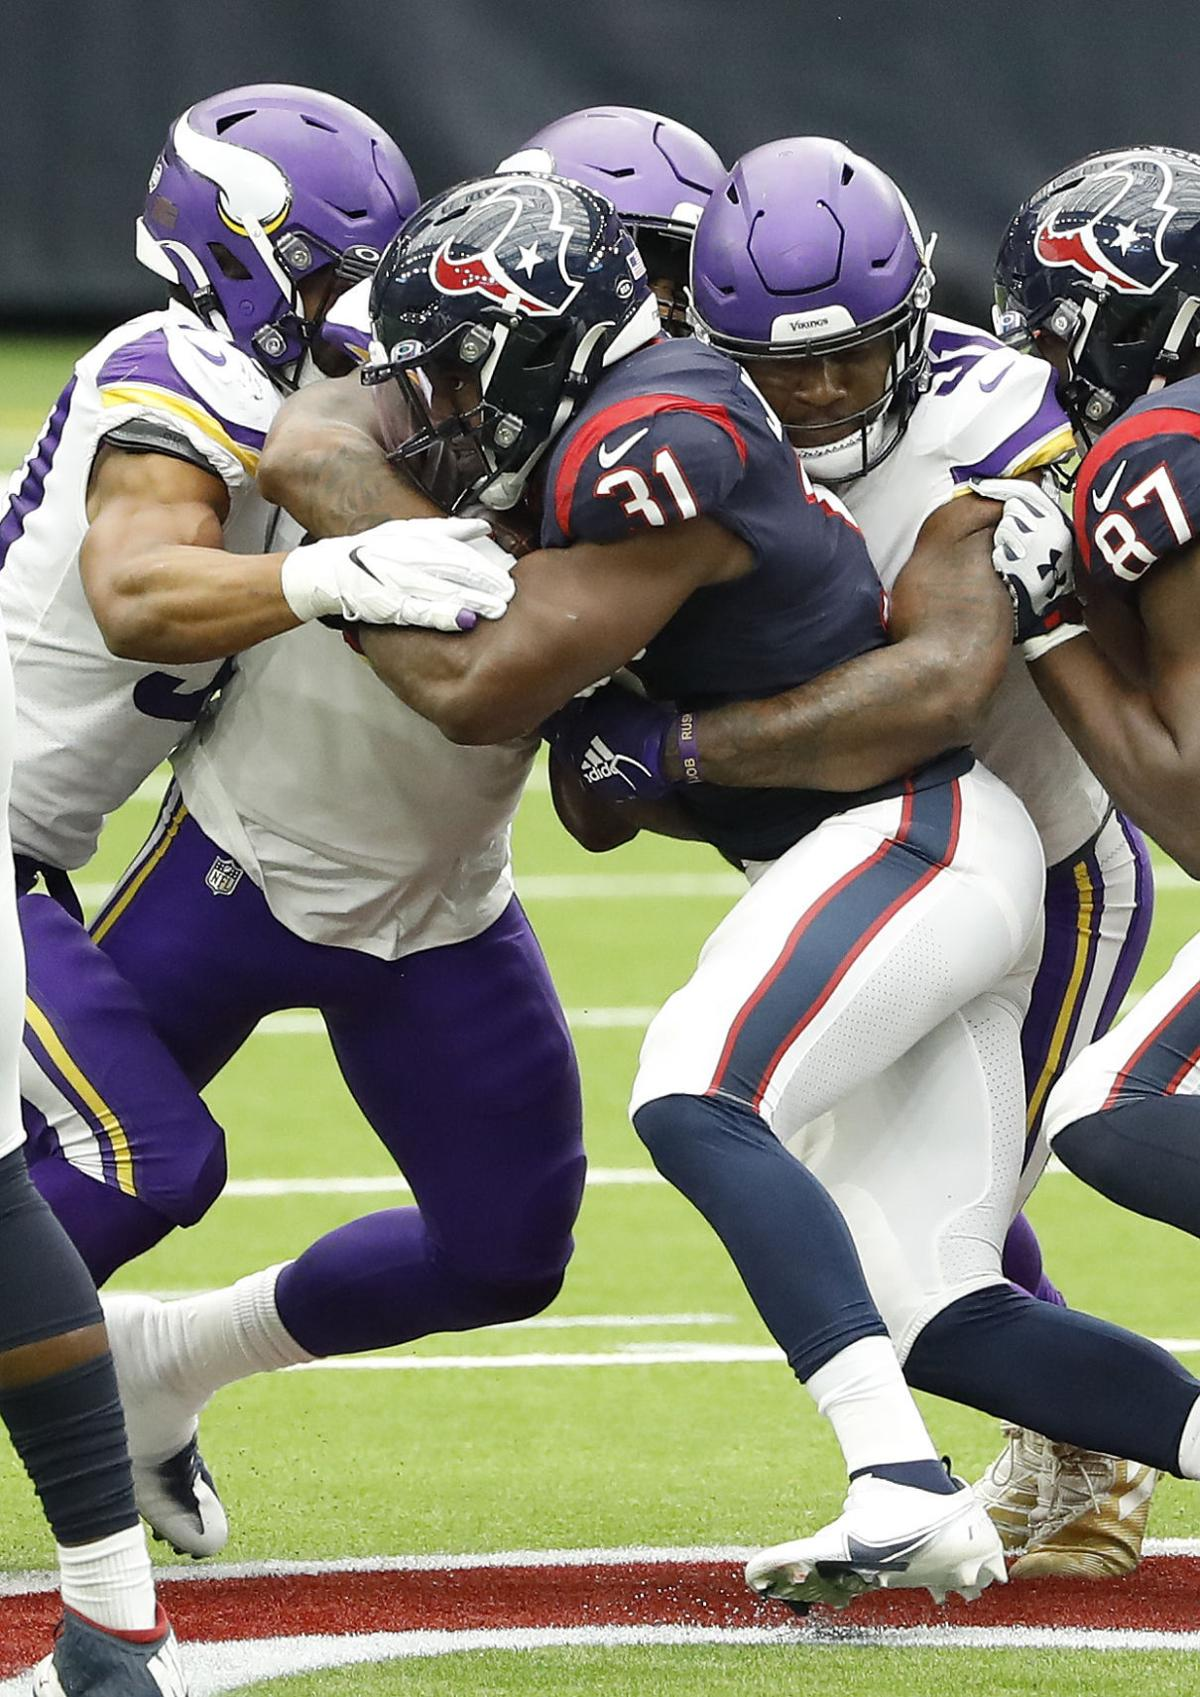 Houston Texans vs. Minnesota Vikings